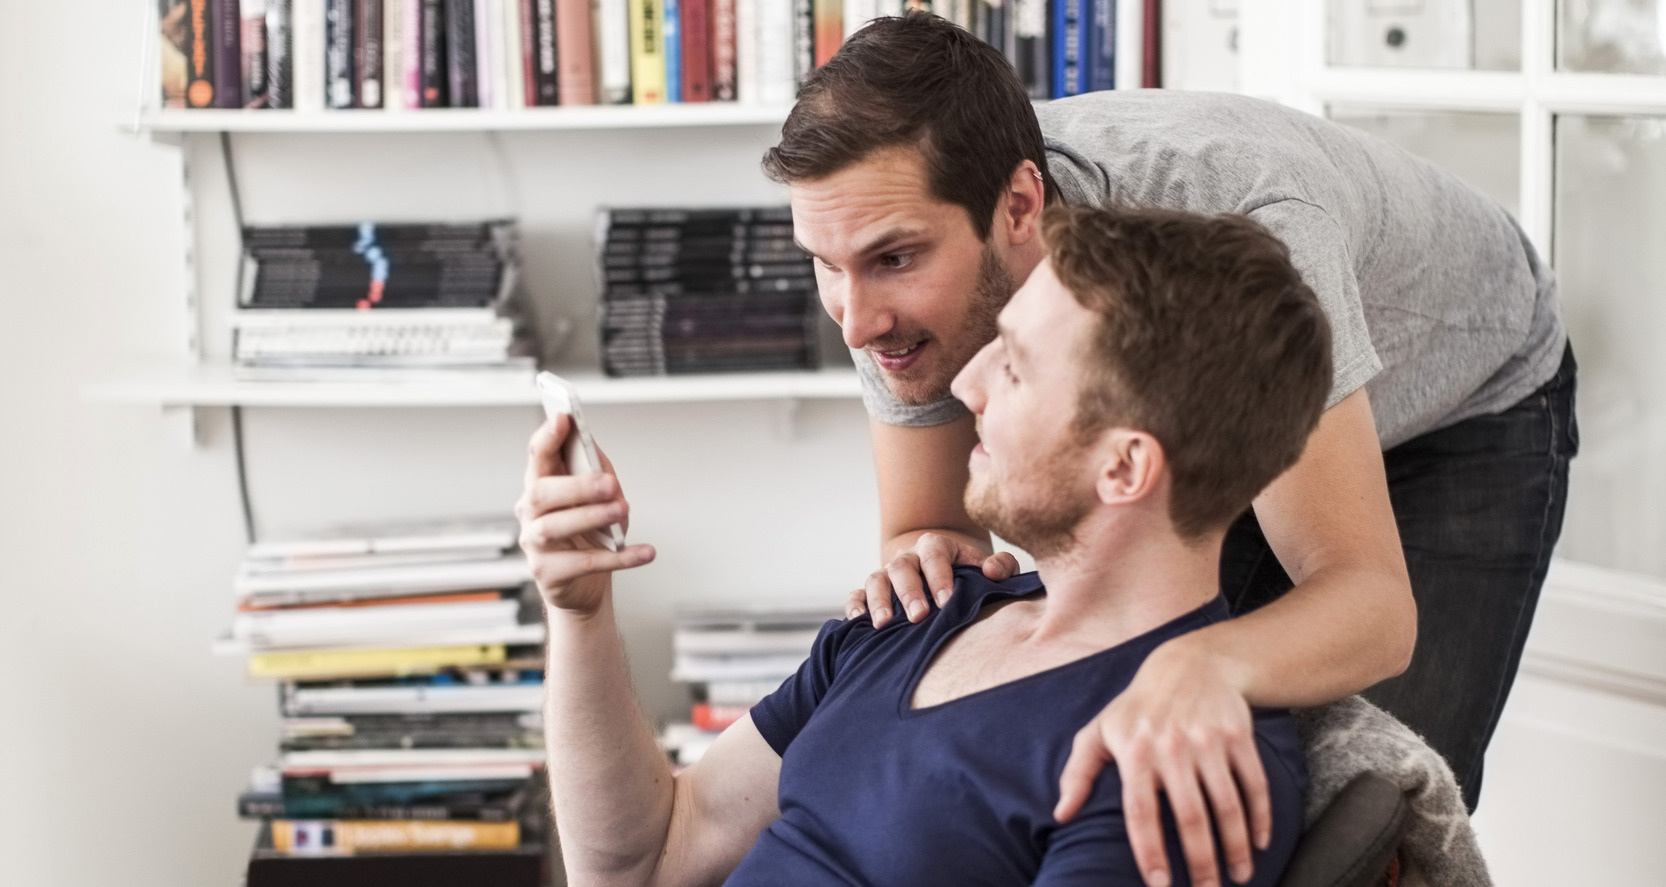 gay-men-partner-using-mobile-phone-together-against-bookshelf-at-home-2